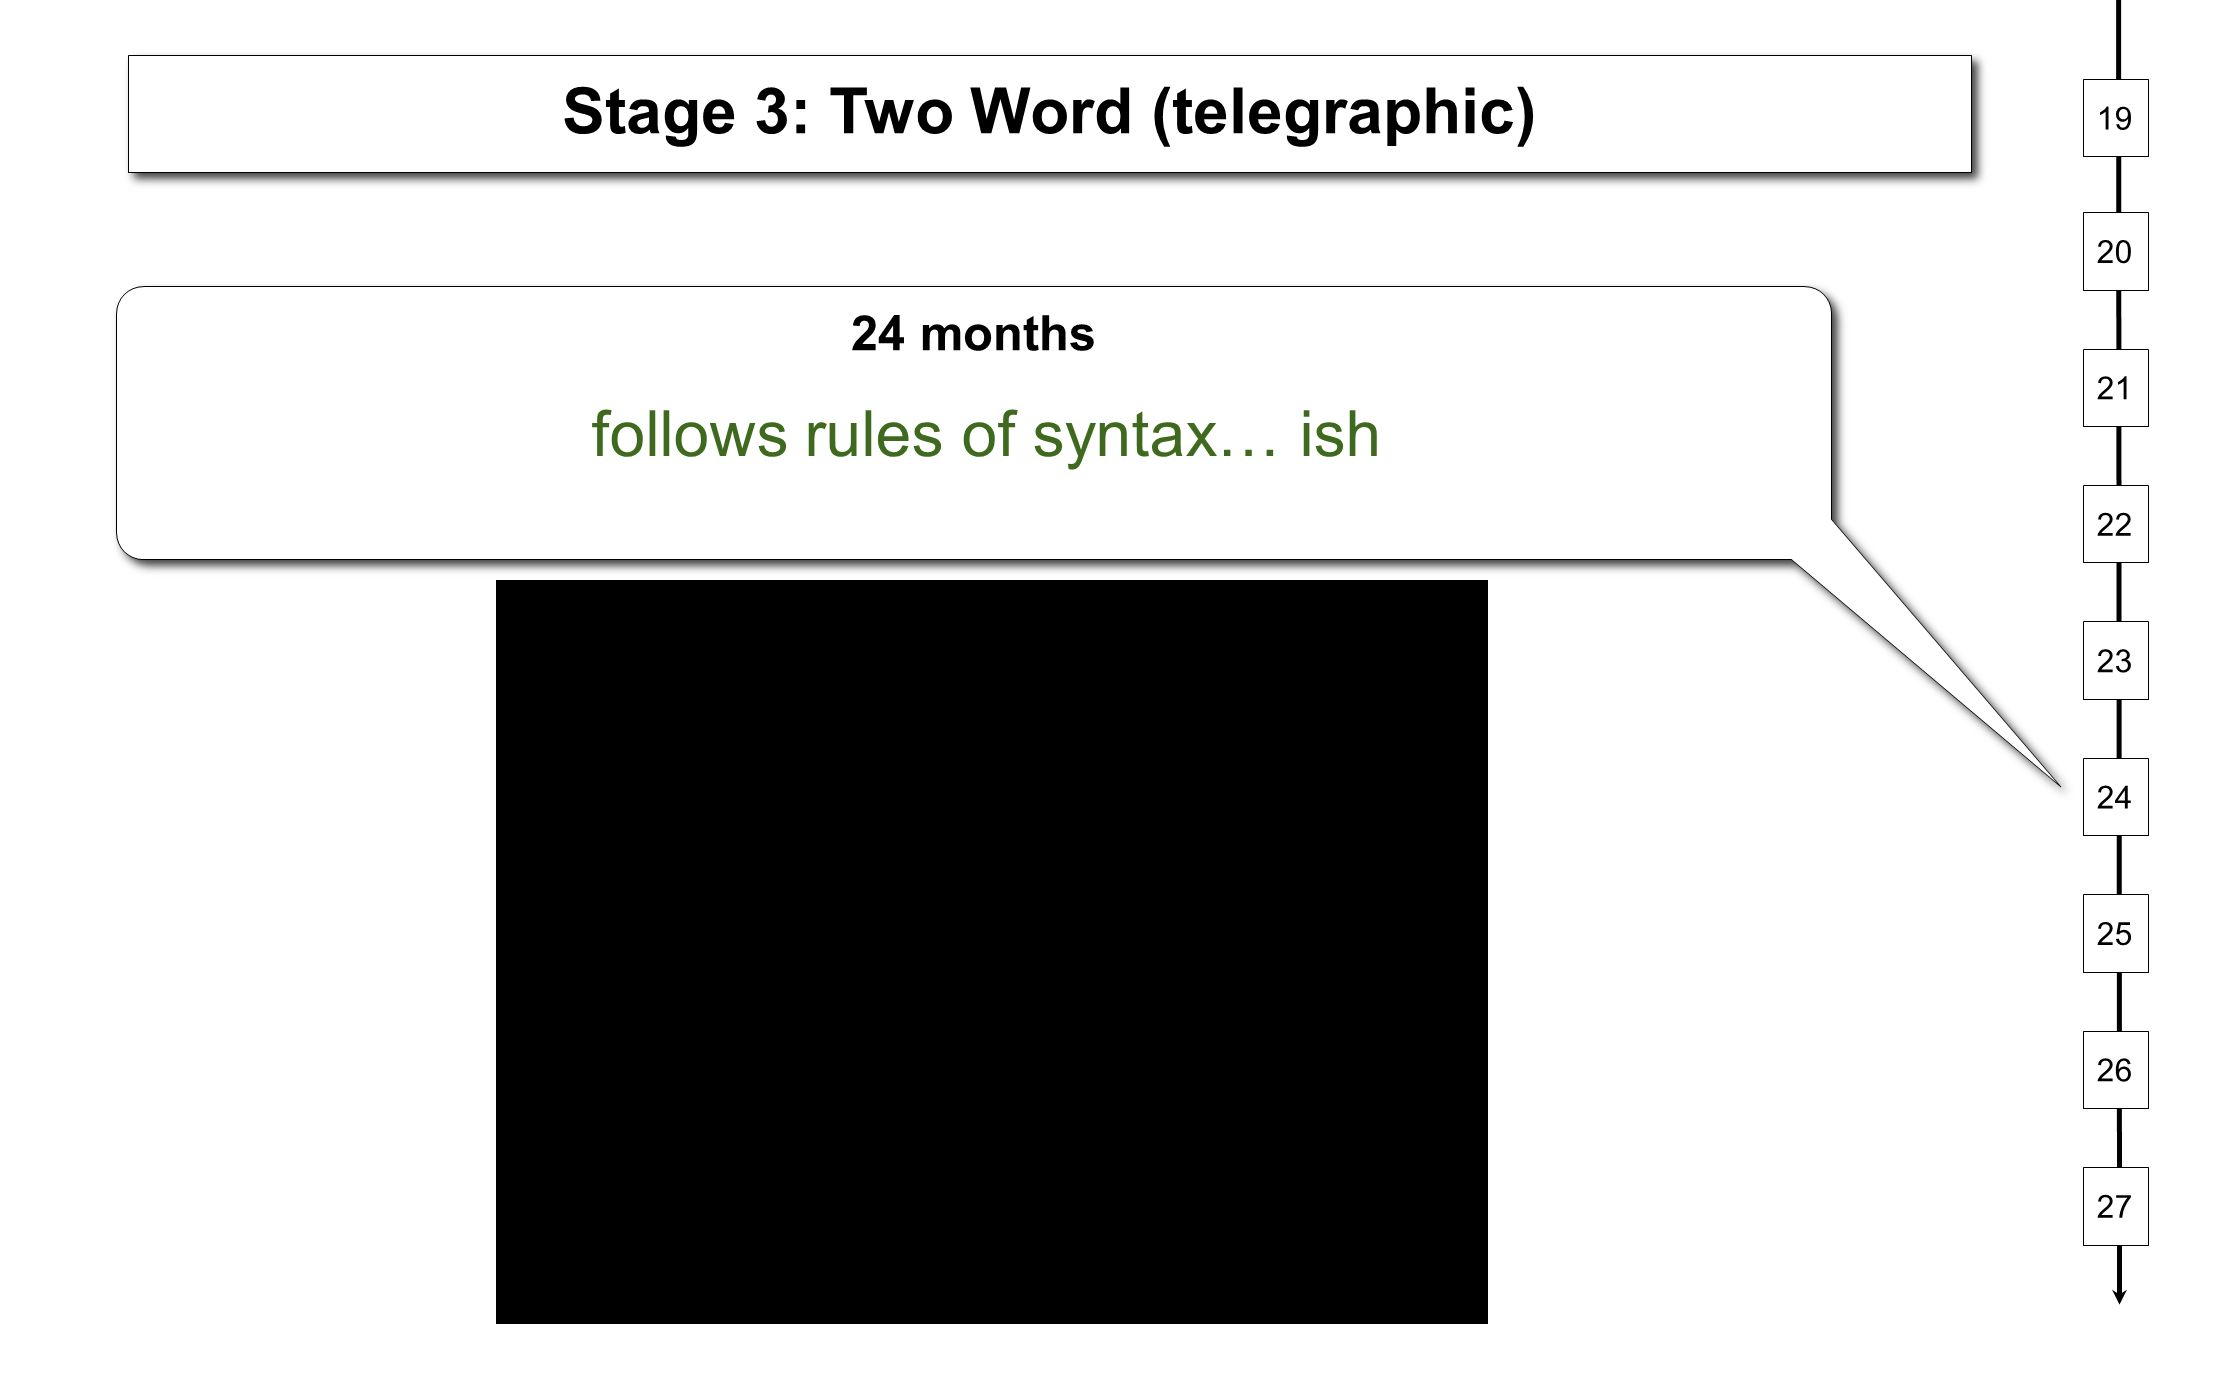 Stage 3: Two Word (telegraphic)